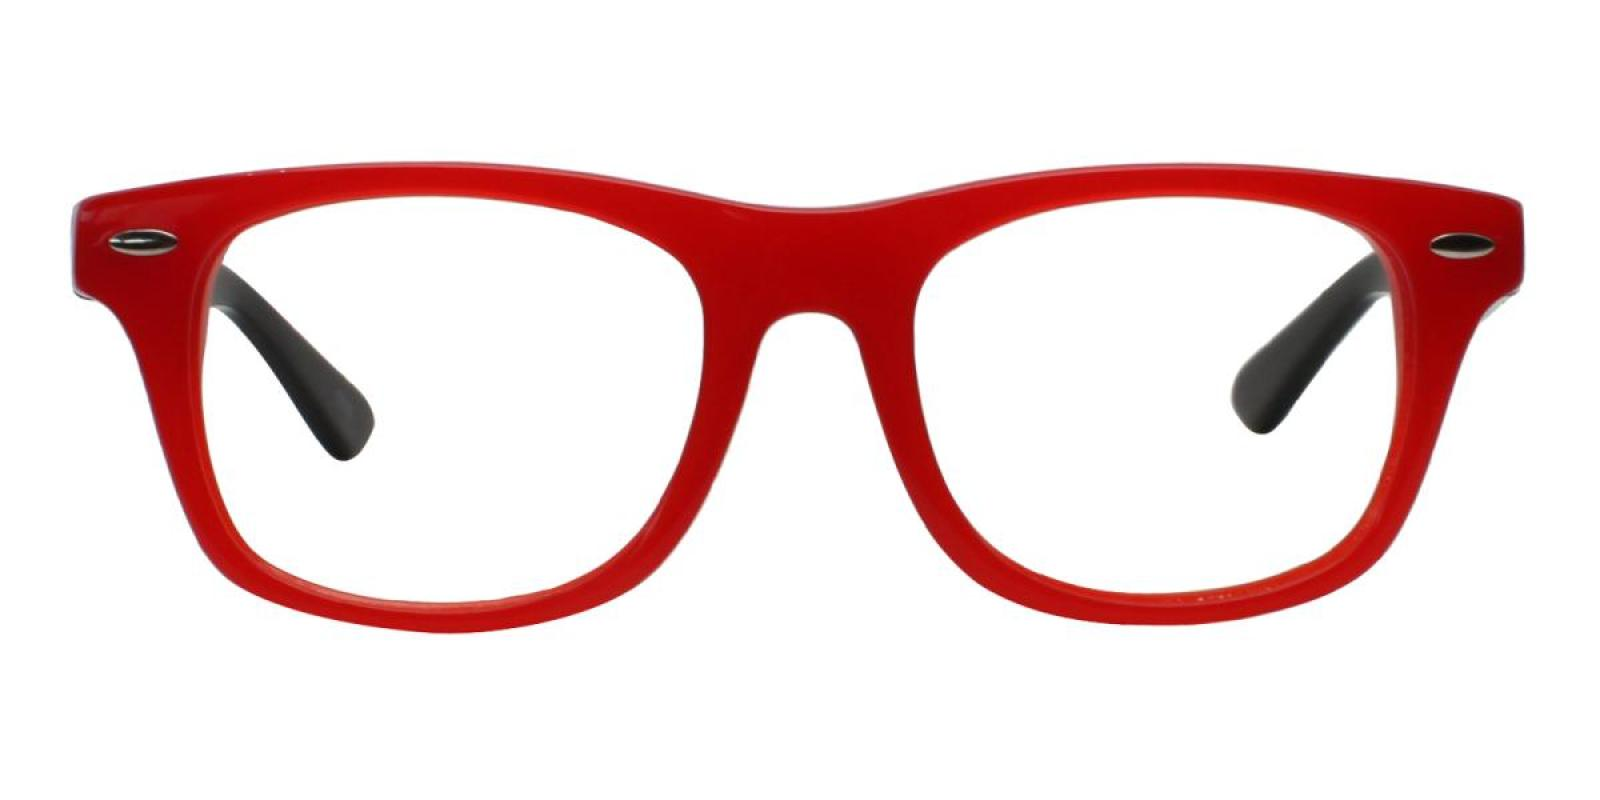 Bristol-Red-Square-Acetate-Eyeglasses-additional2